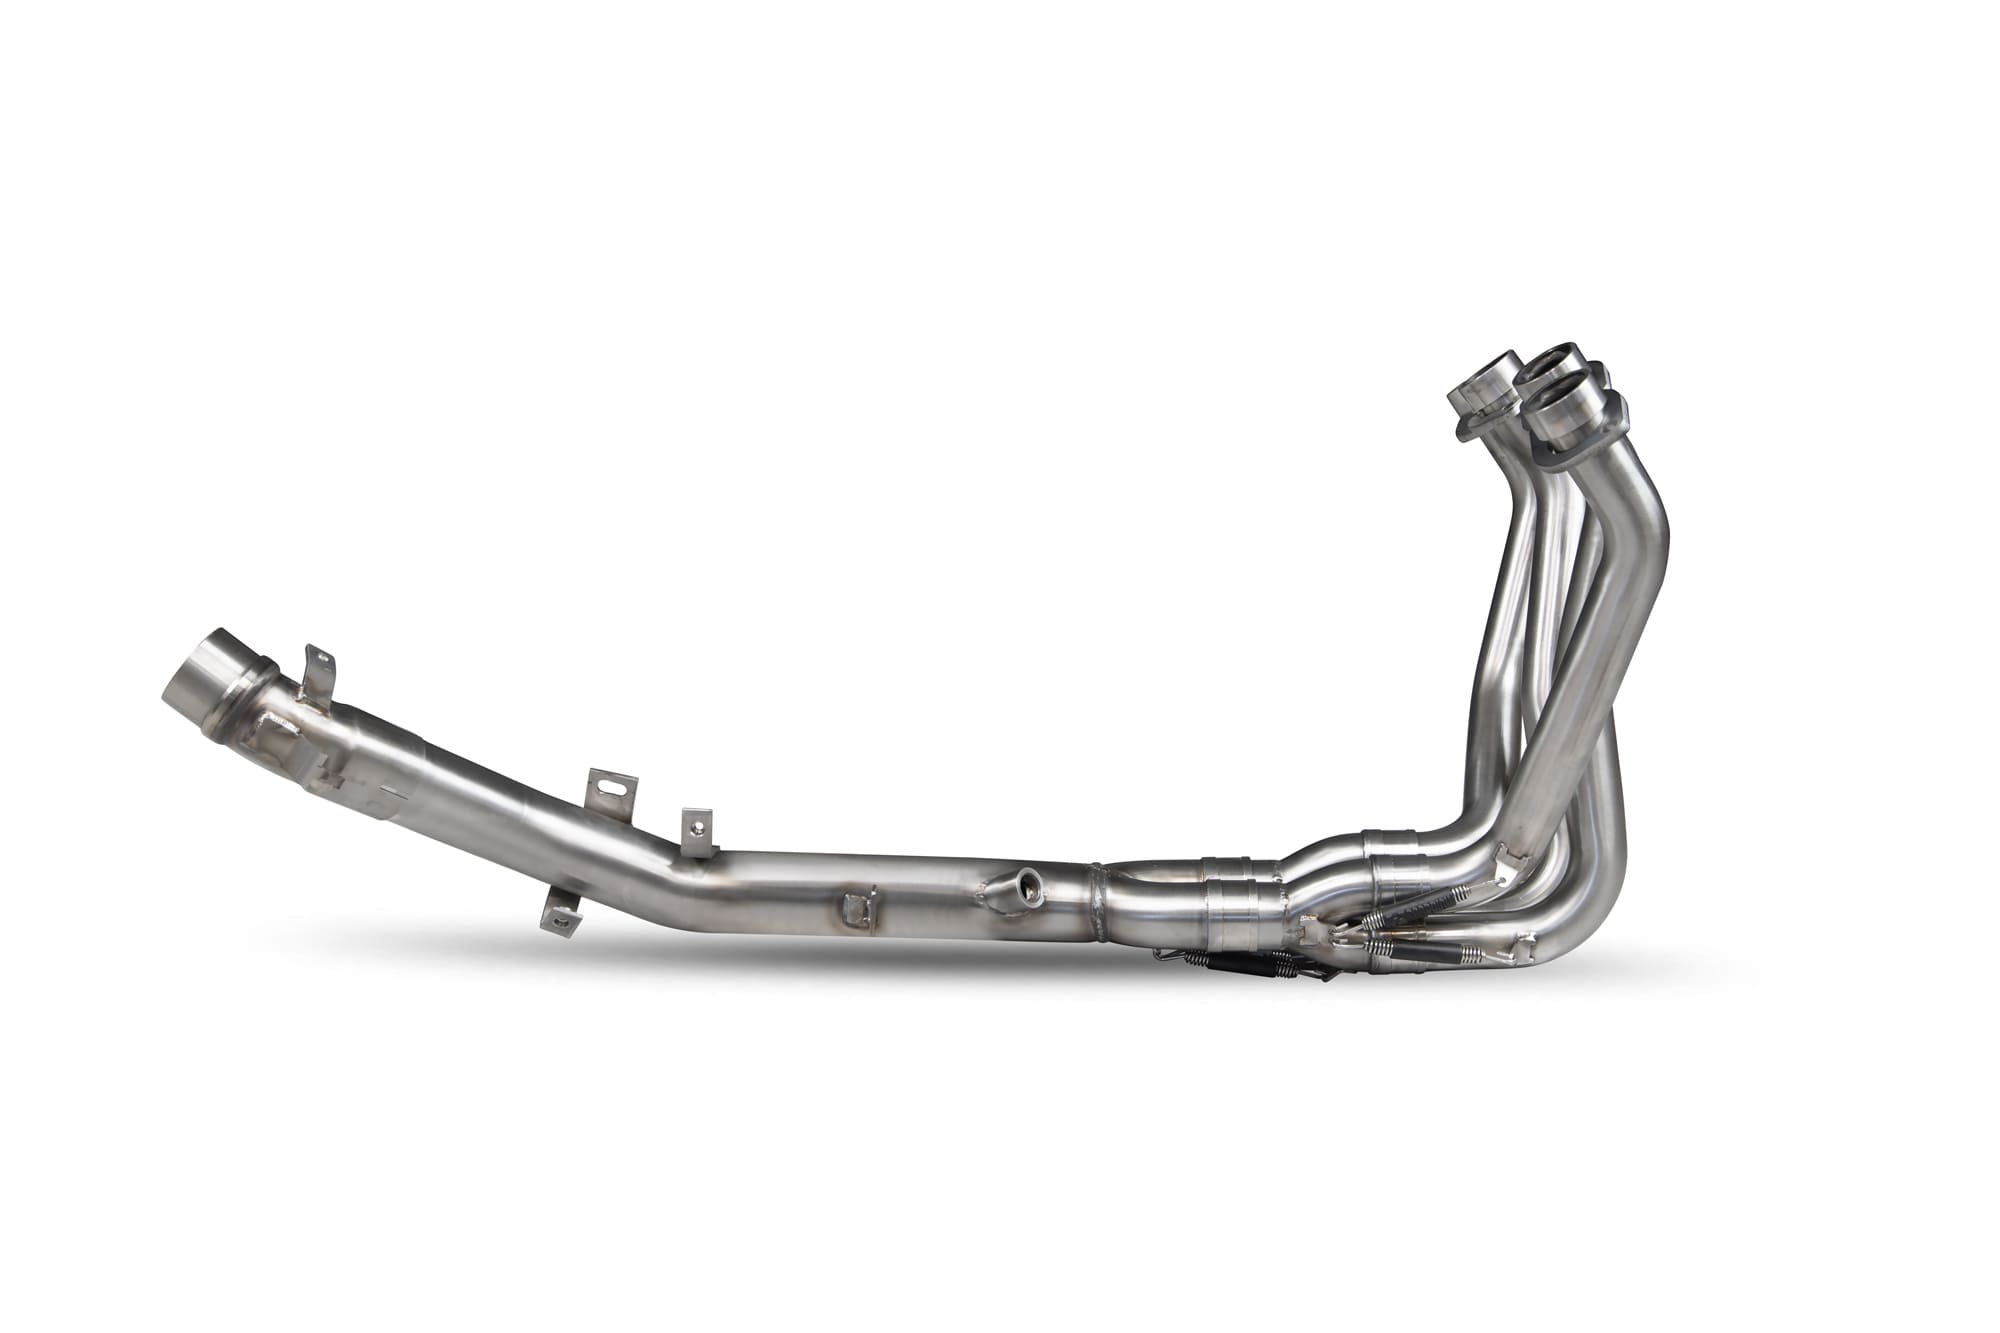 scorpion exhaust decat header pipes kawasaki z900rs 2018 current